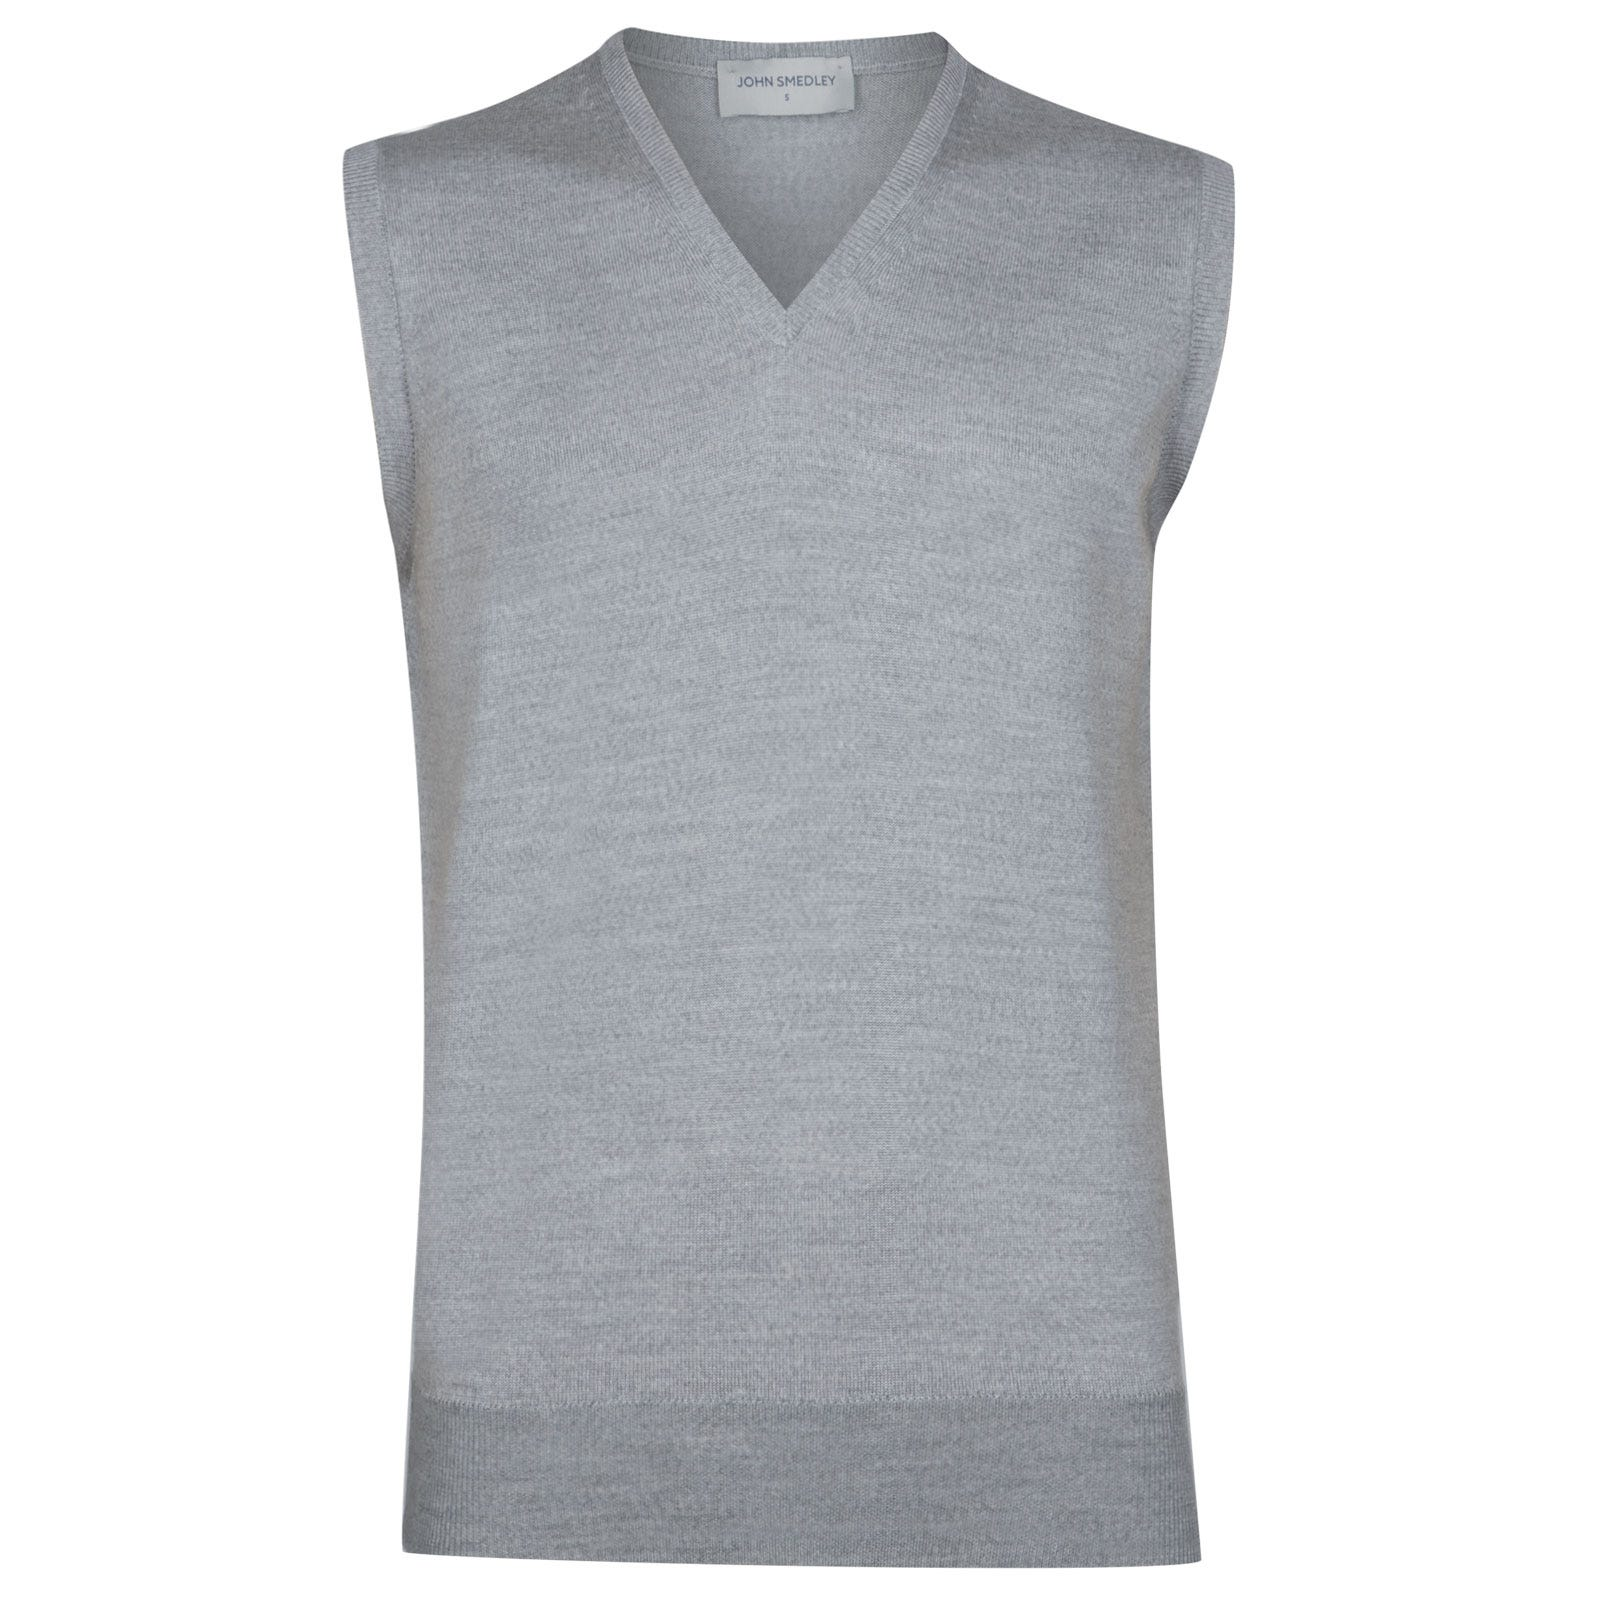 John Smedley Hadfield Merino Wool Slipover in Bardot Grey-XL